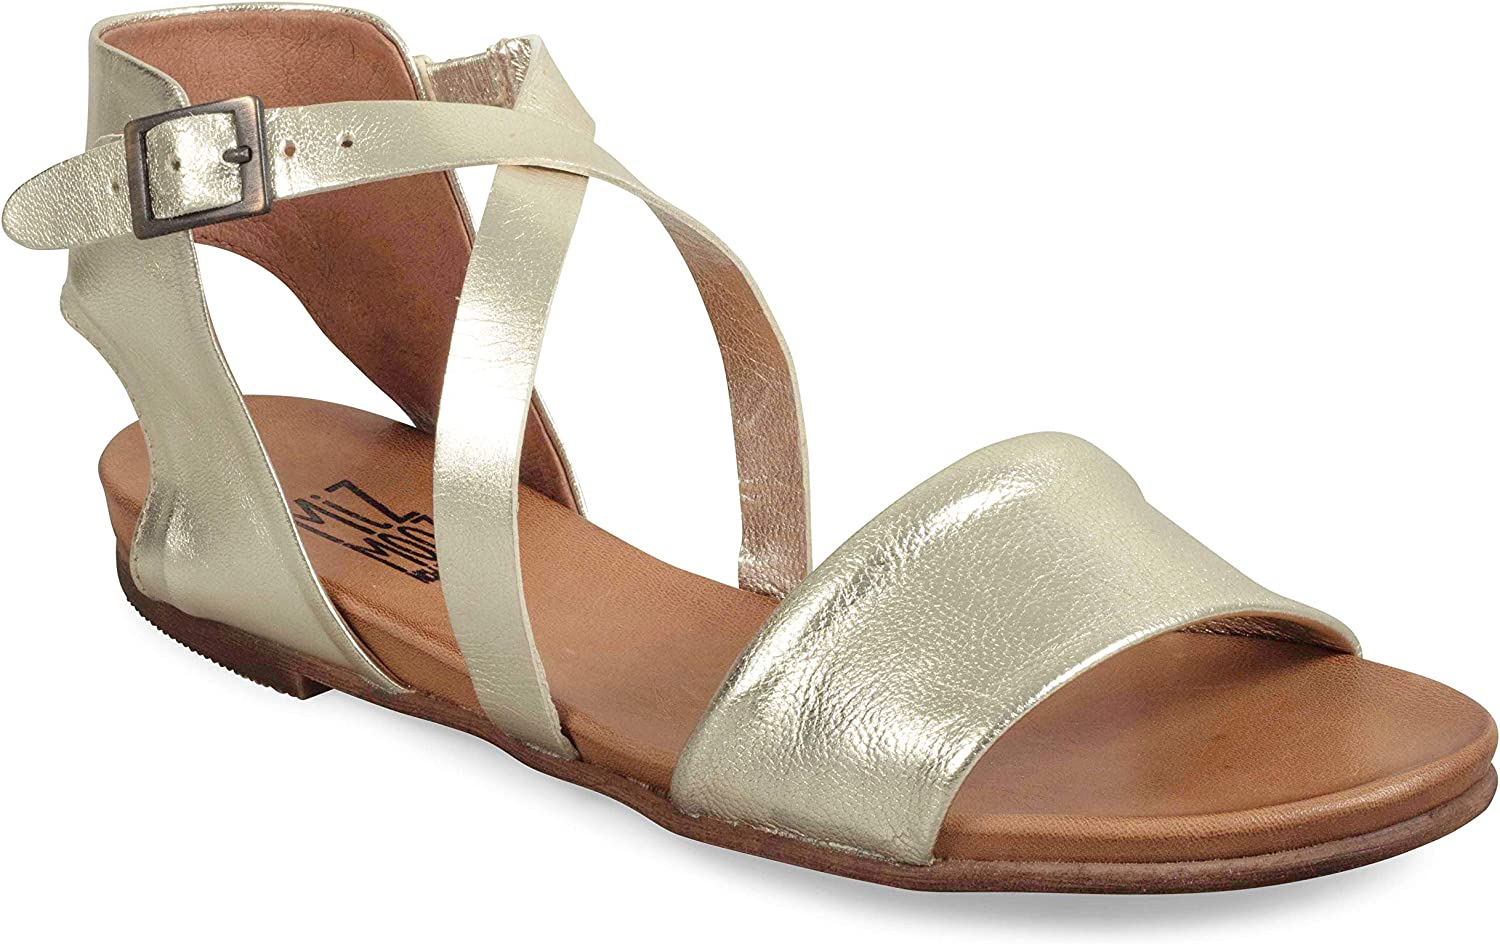 Miz Mooz Women's Aster in gold